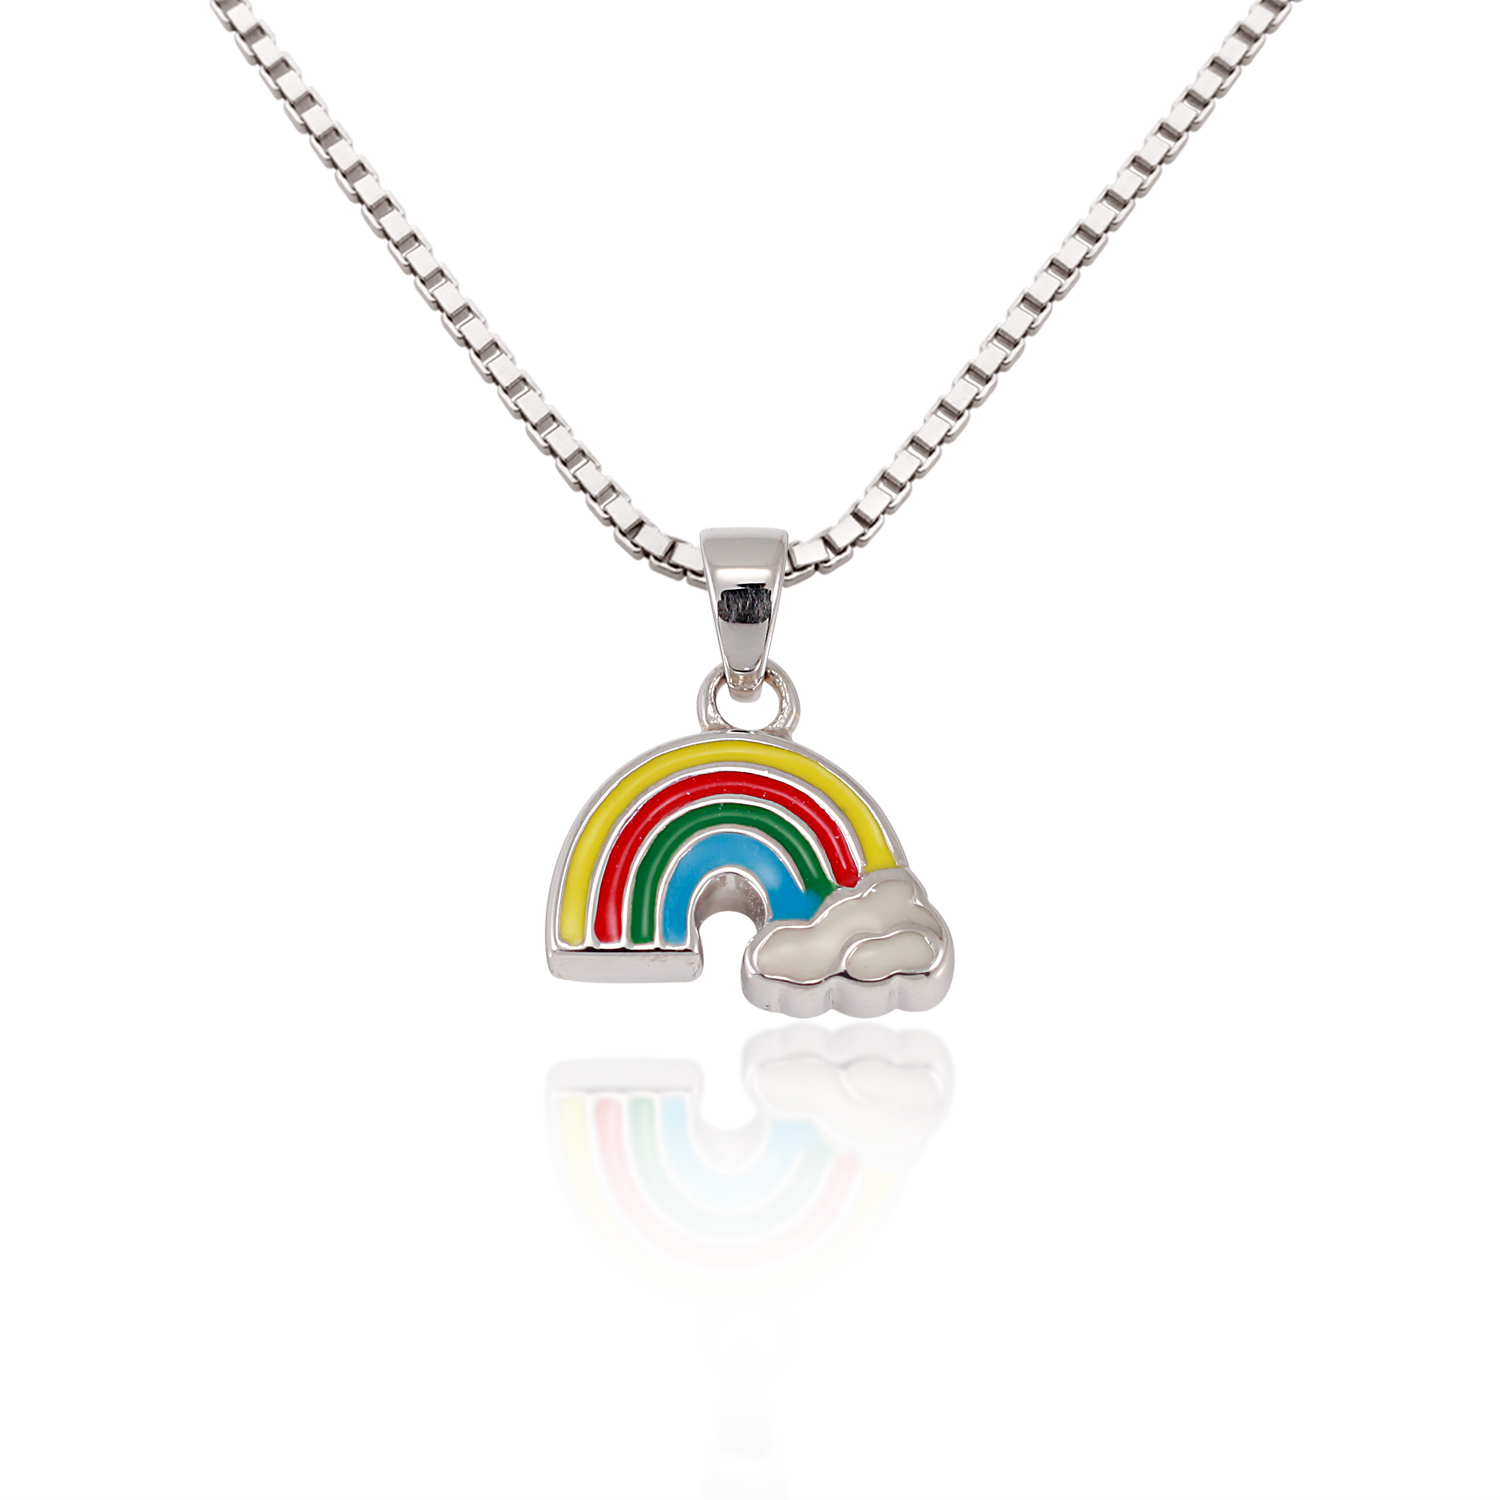 Children's 925 Sterling Silver Colorful Rainbow Cloud Pendant Necklace 13-15 inches